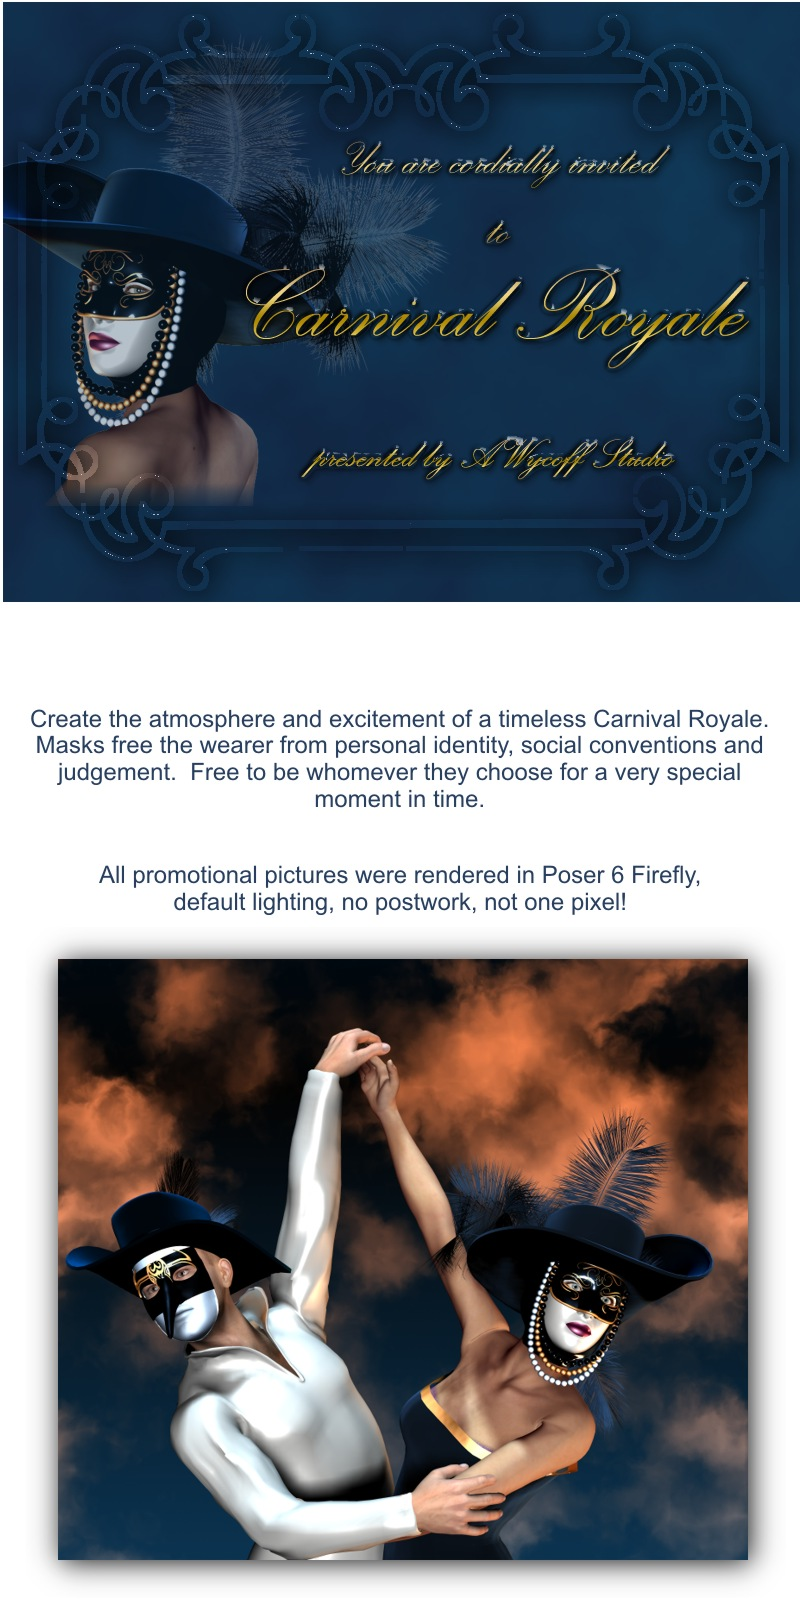 AW Carnival Royale